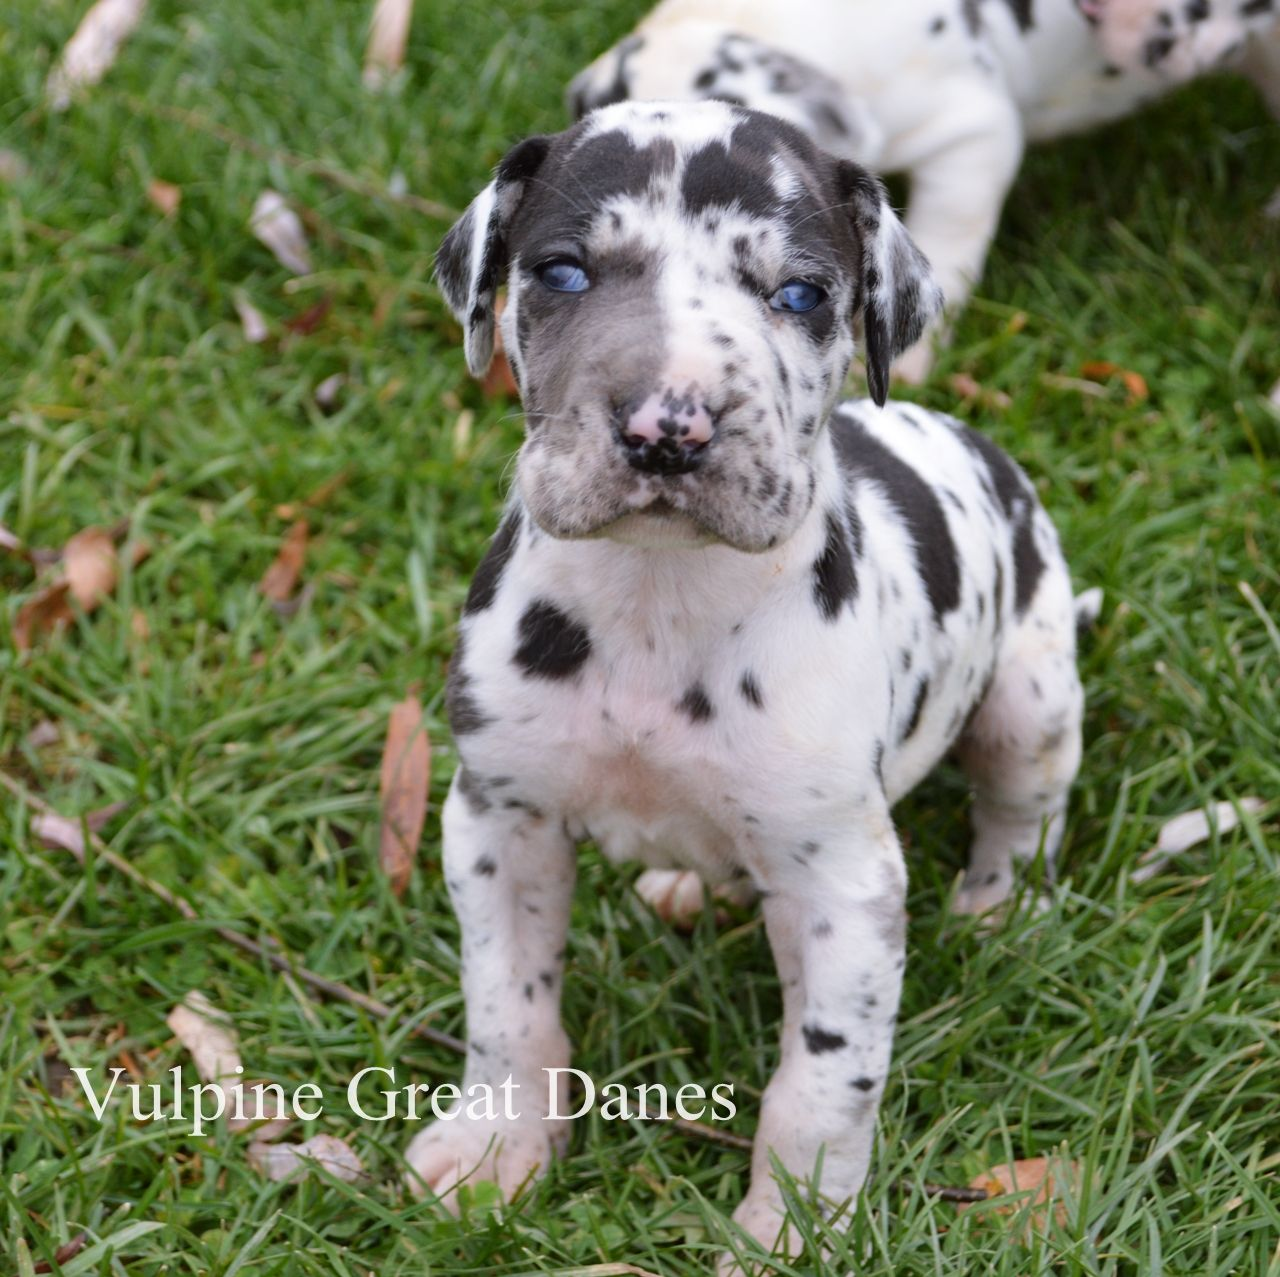 Harlequin Great Dane Puppy Harlequin Great Dane Puppy Great Dane Puppy Harlequin Great Danes